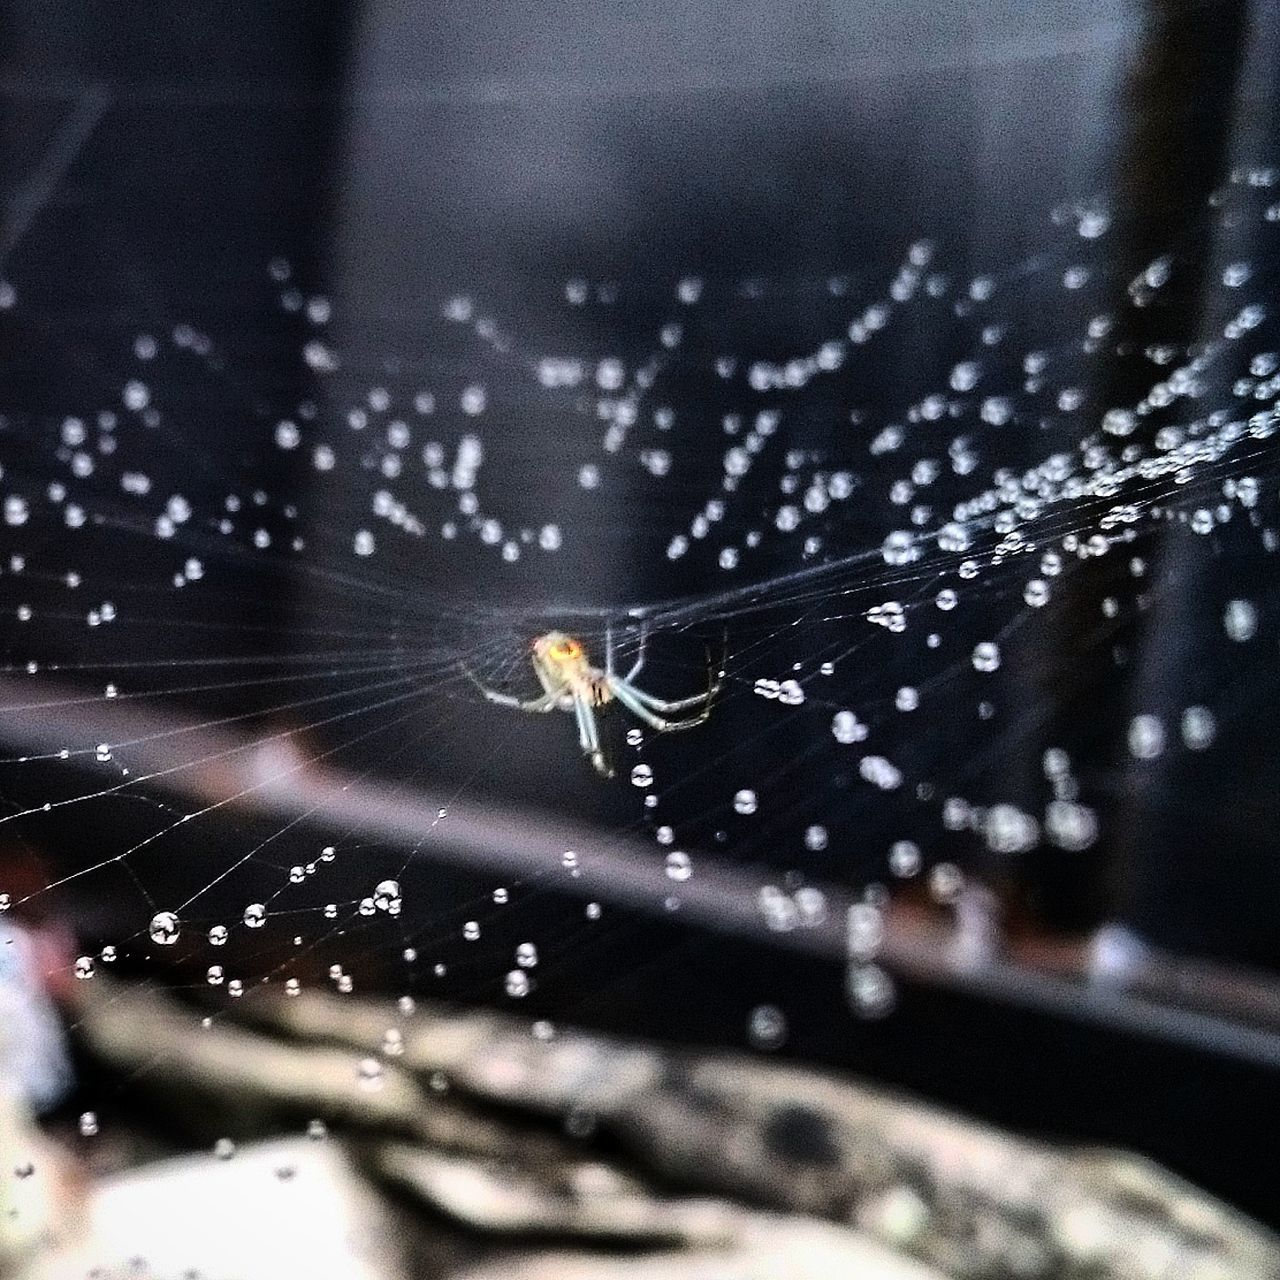 spider web, spider, one animal, web, animal themes, focus on foreground, survival, insect, animals in the wild, close-up, no people, nature, outdoors, day, animal wildlife, animal leg, fragility